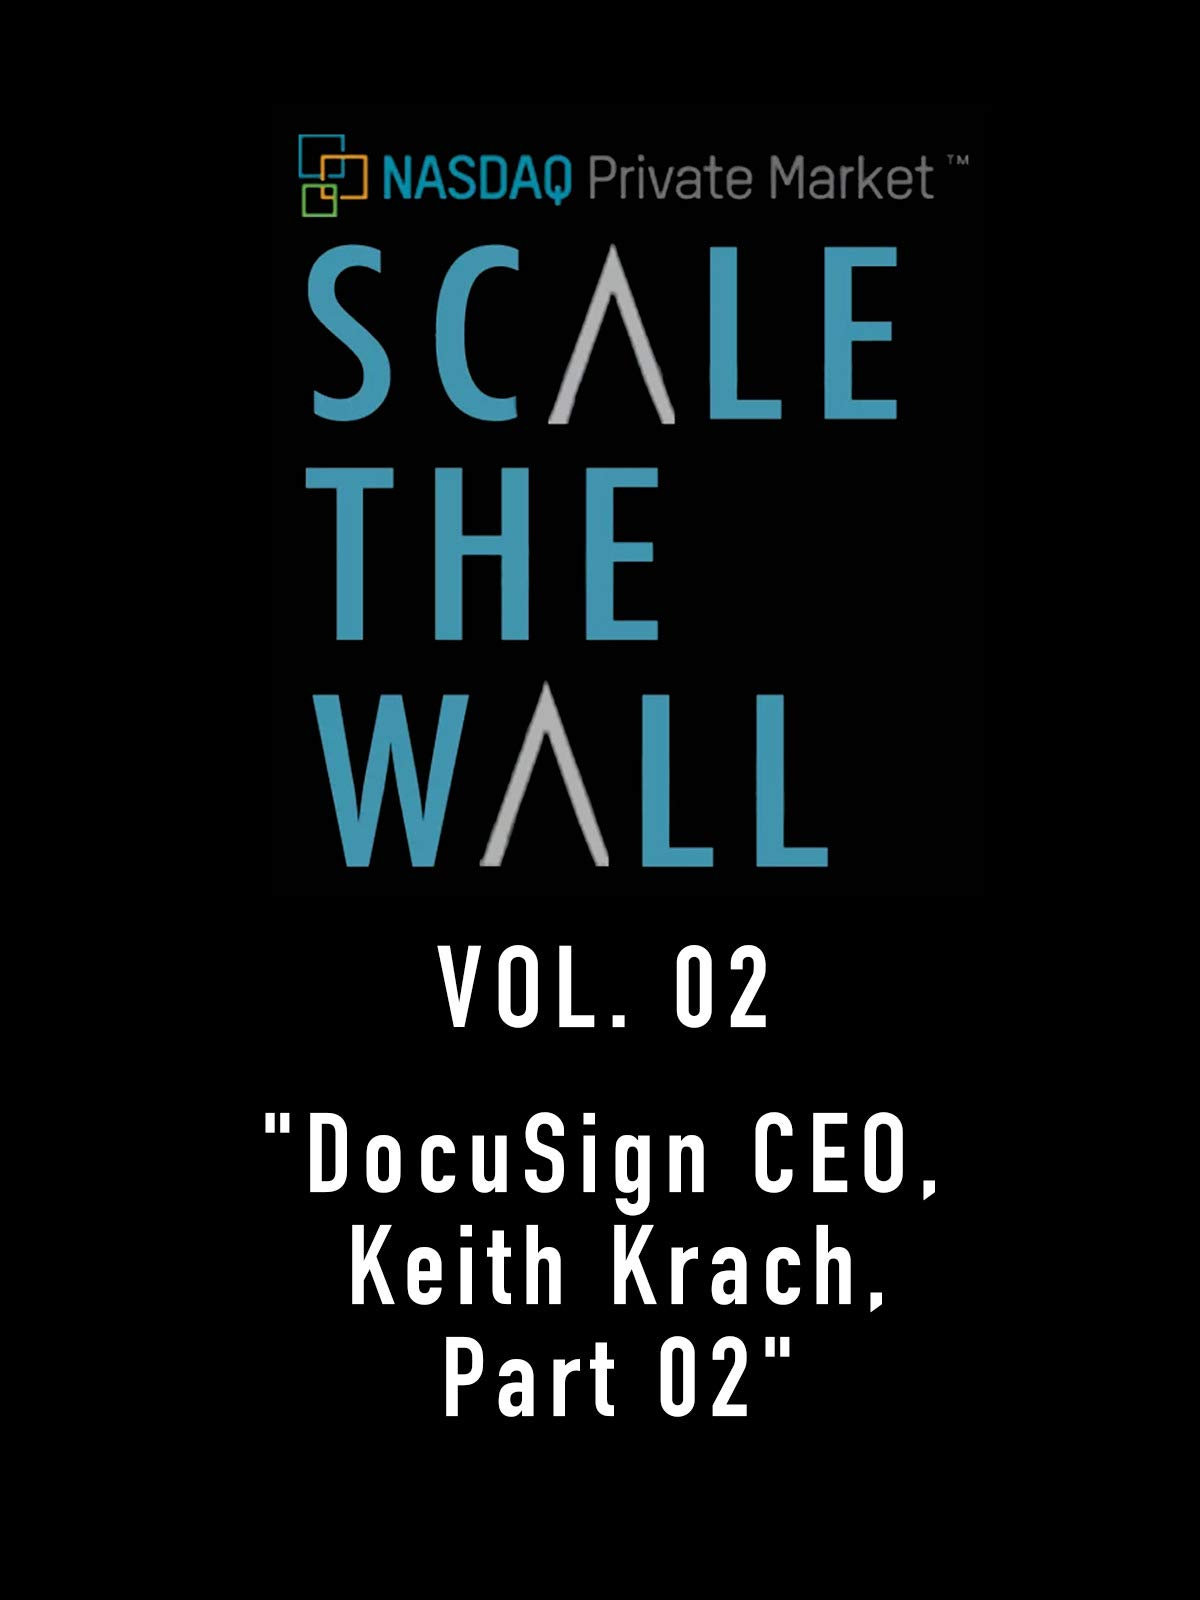 Scale the Wall Vol. 02